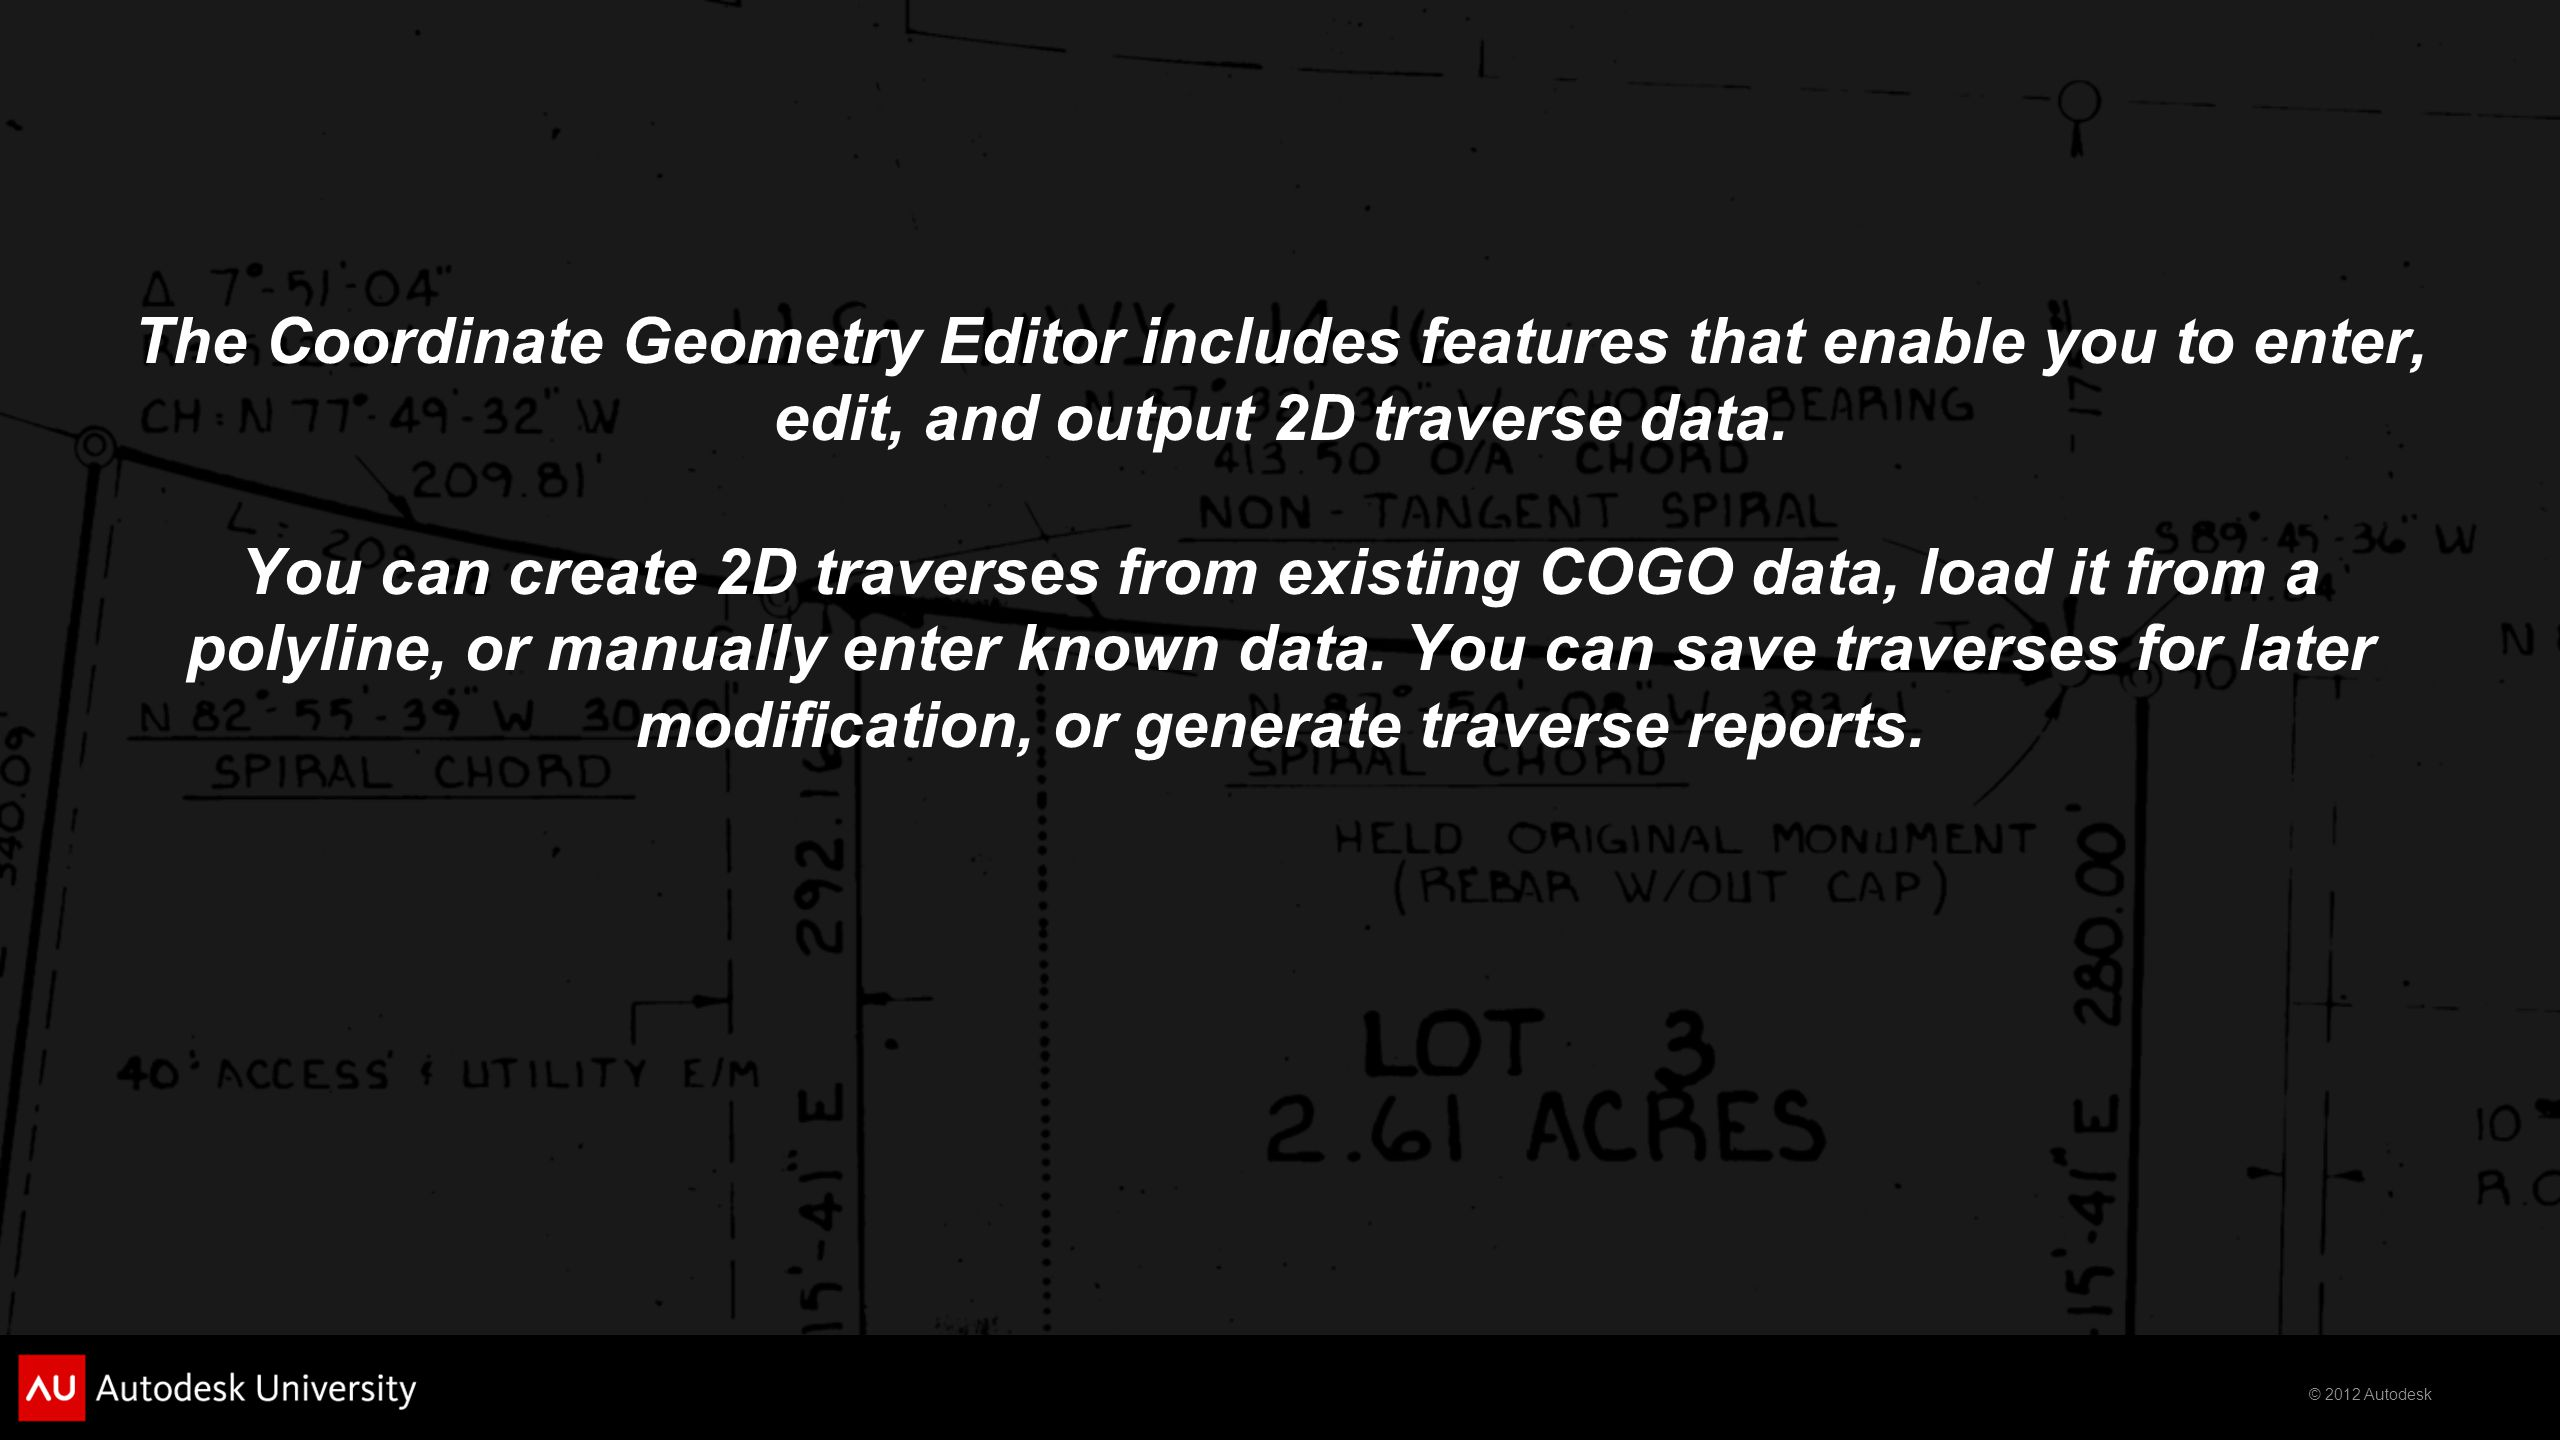 © 2012 Autodesk The Coordinate Geometry Editor includes features that enable you to enter, edit, and output 2D traverse data. You can create 2D traver